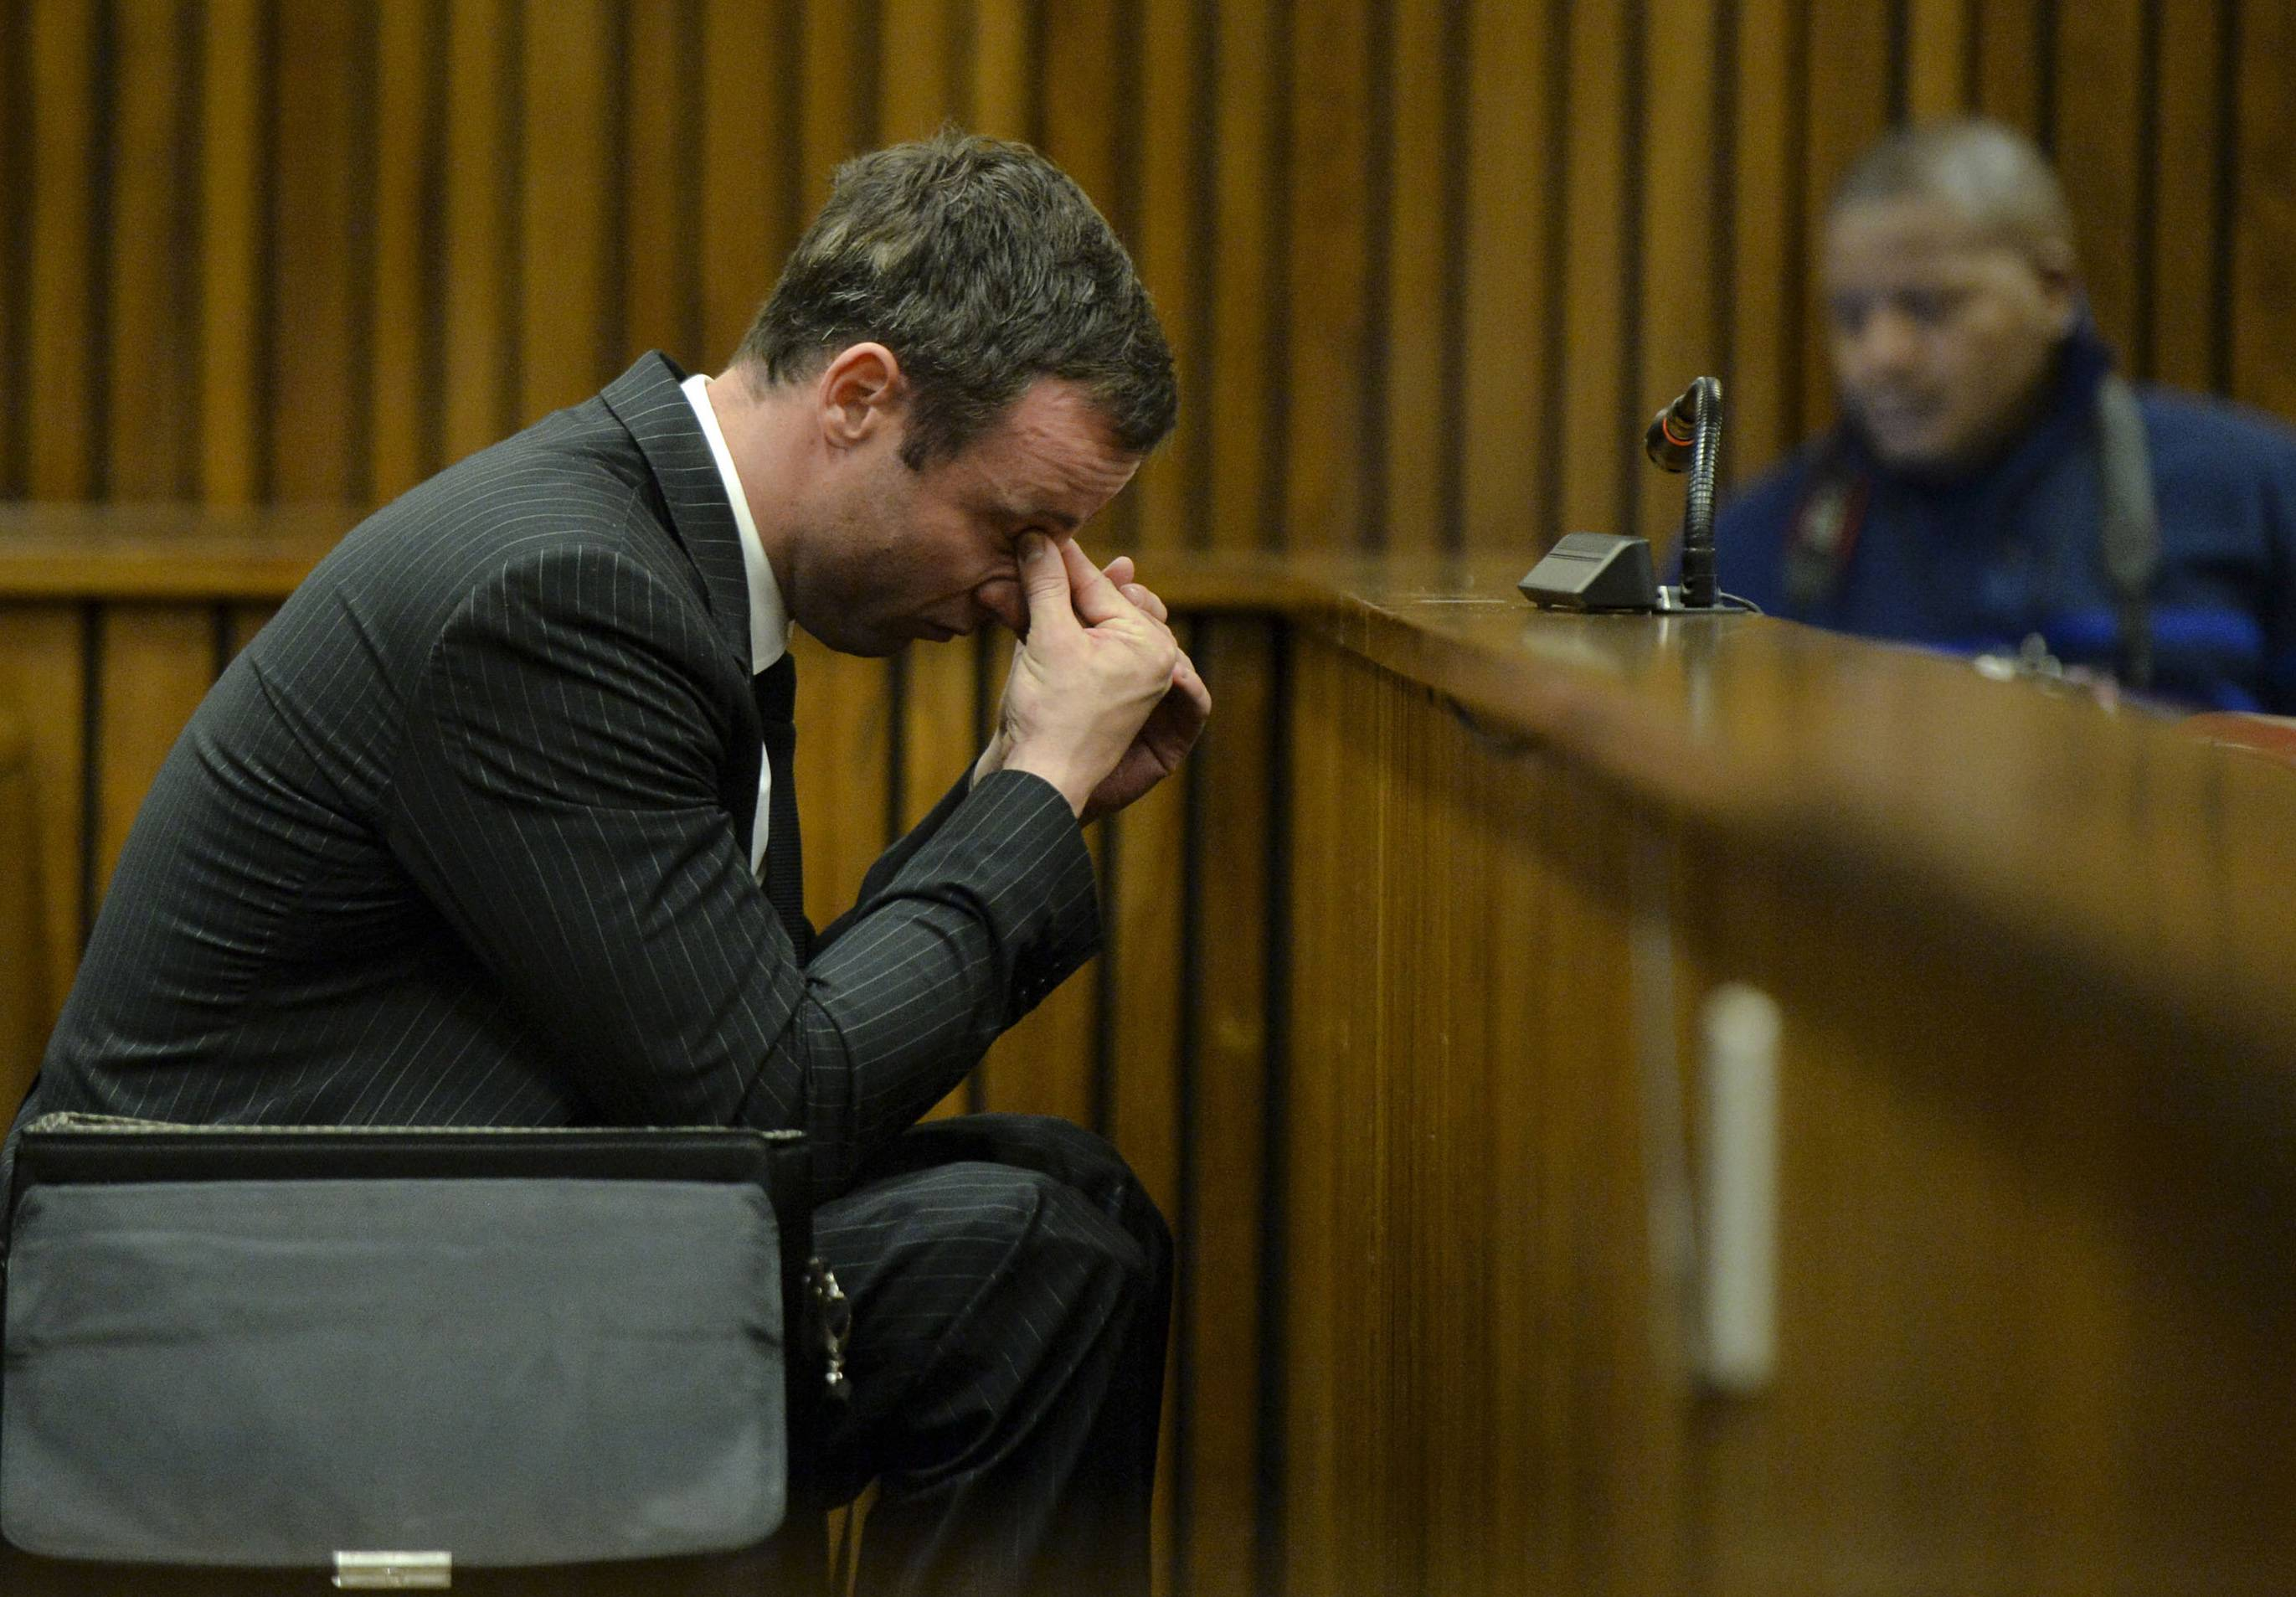 Oscar Pistorius, gestures, as he sits in court, during his trial in Pretoria, South Africa, Friday, Aug. 8, 2014. The judge in the murder trial said Friday that she will give a verdict on Sept. 11, ending a televised trial that stretched for five months and transfixed South Africans and others around the world.